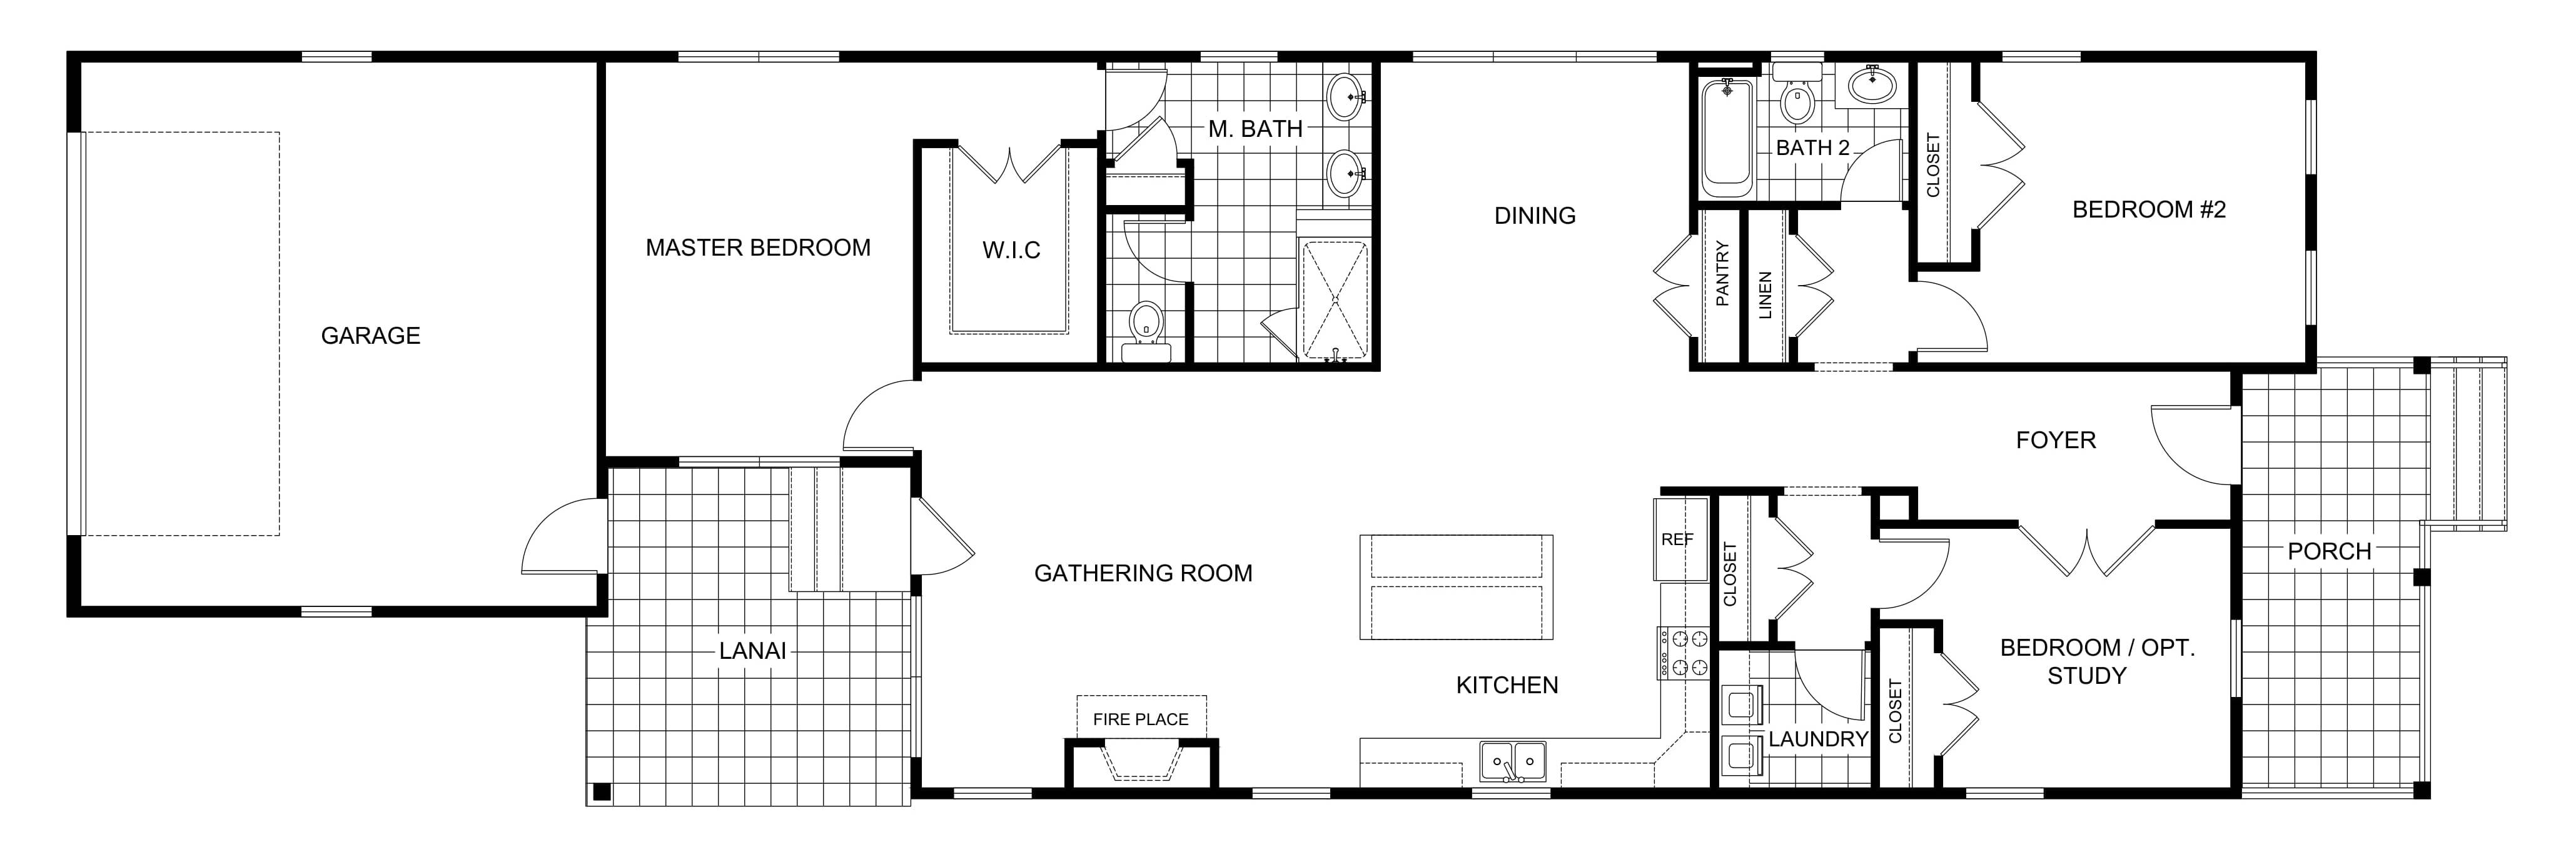 Create 2D 3D Floor Plans – Quick, Low